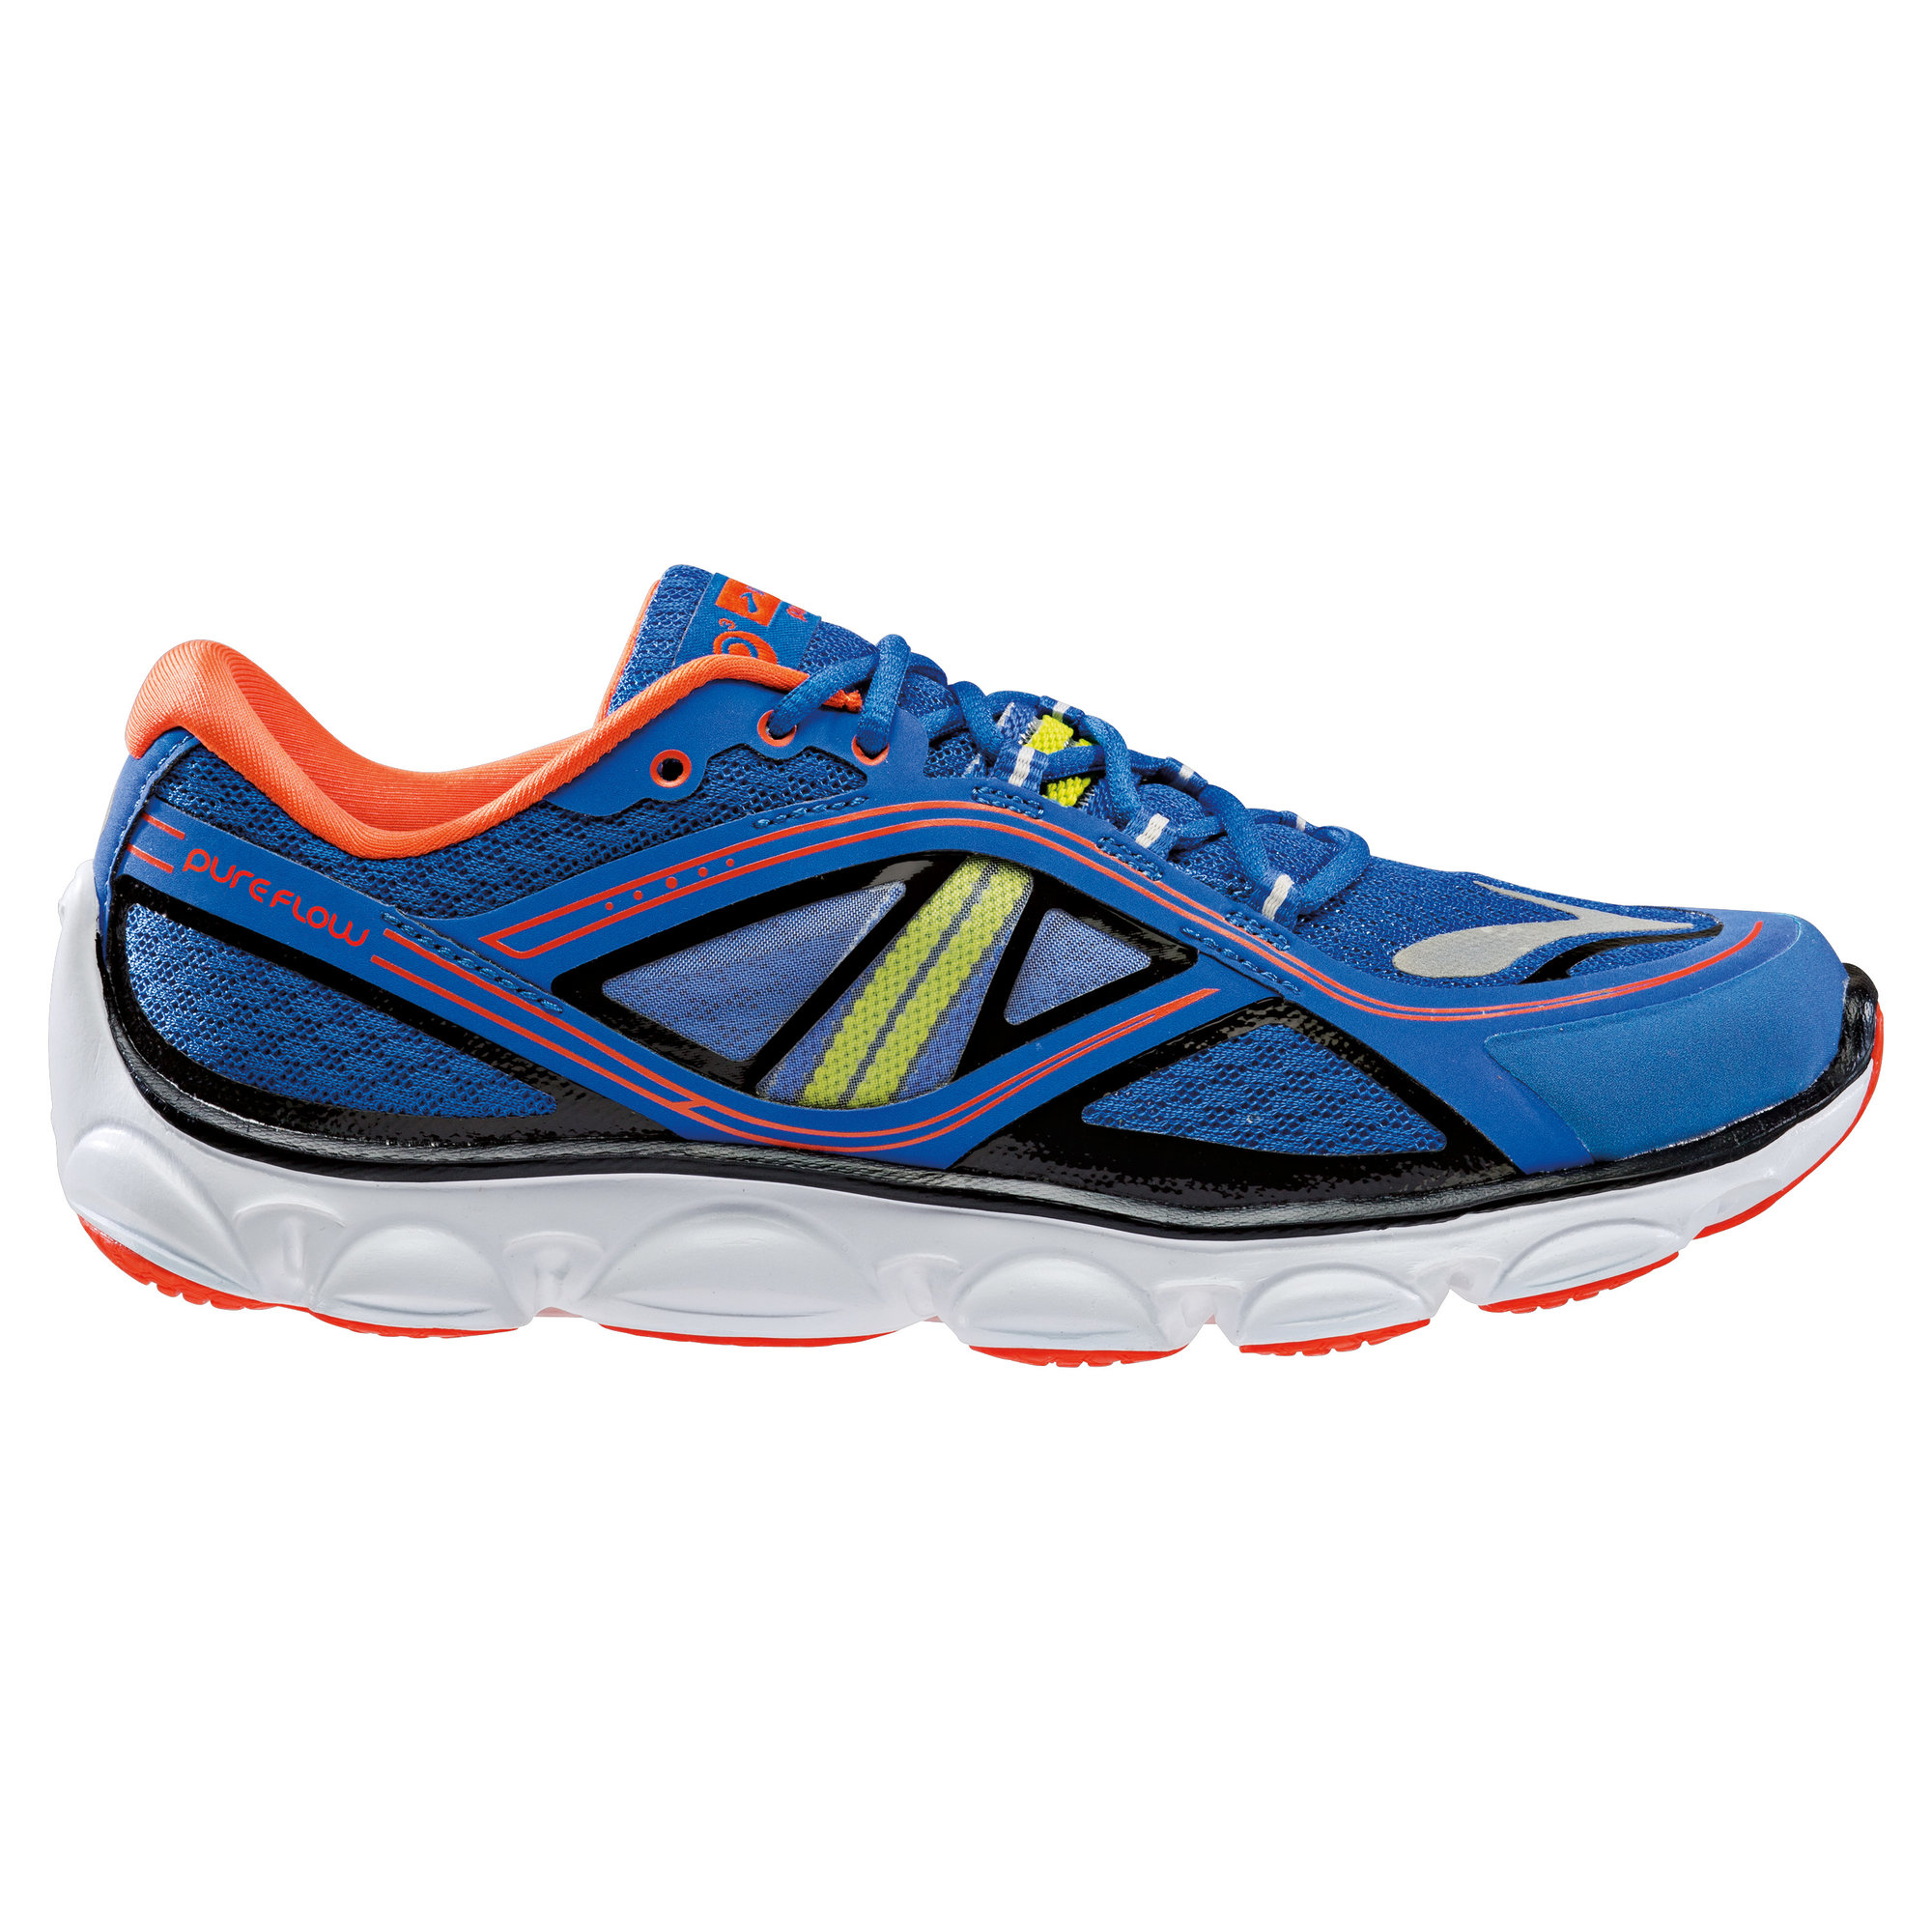 Brooks Kids Pureflow 3 in Blau, Orange